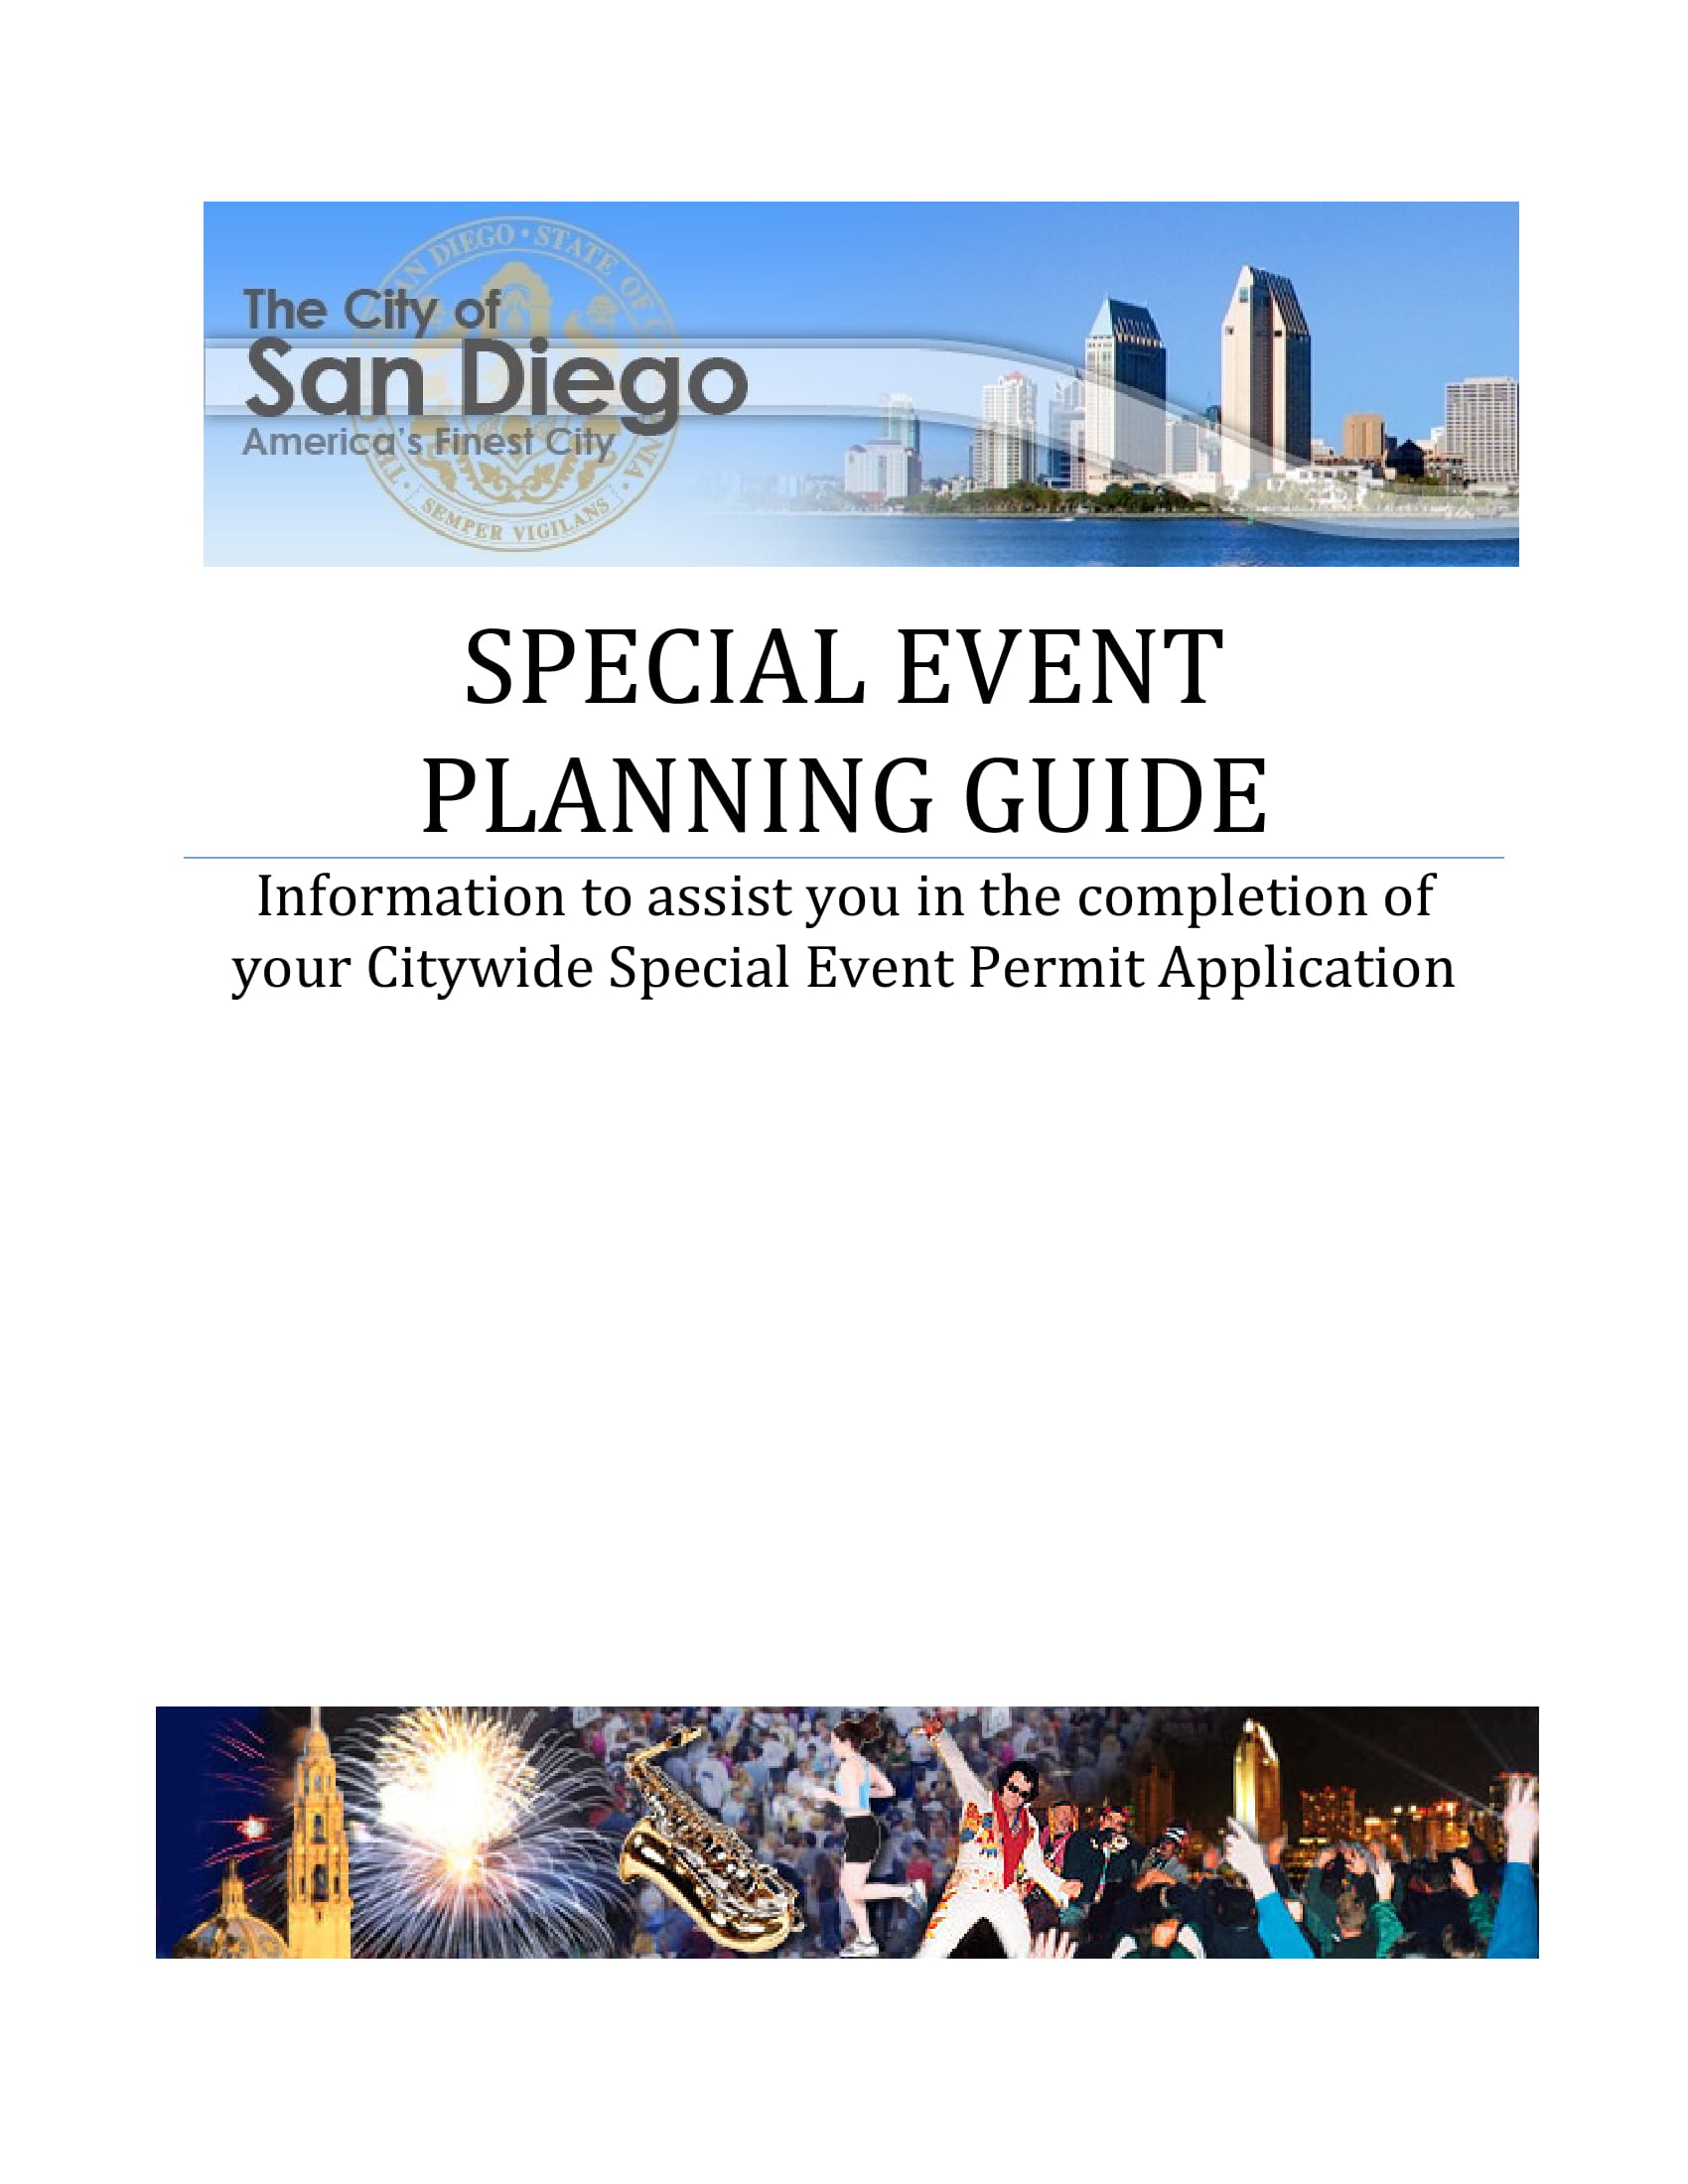 special event planning guide example